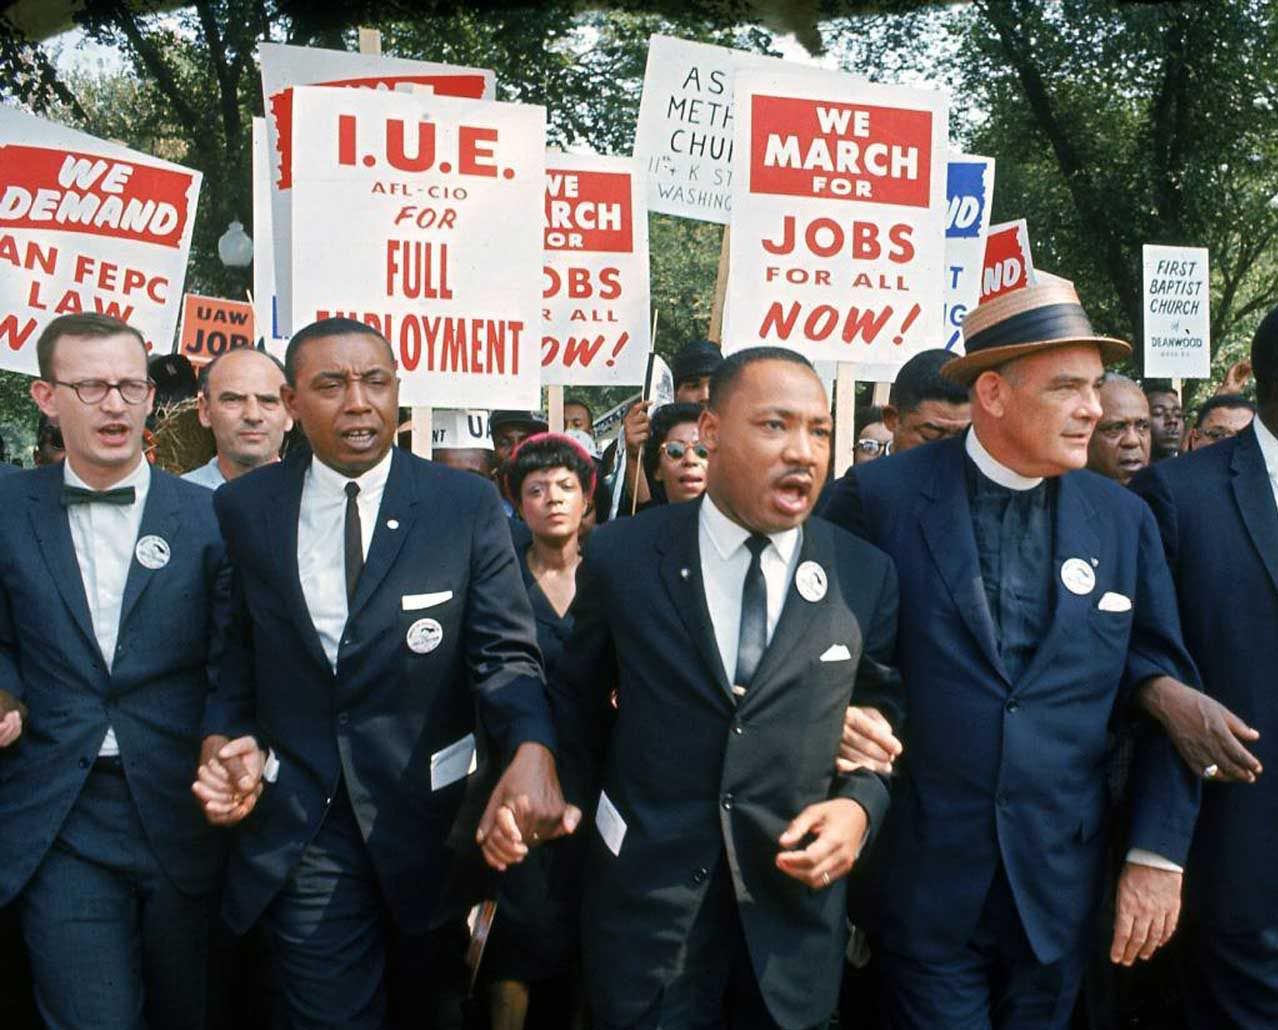 Martin Luther King, Jr. and others marching for jobs and justice.